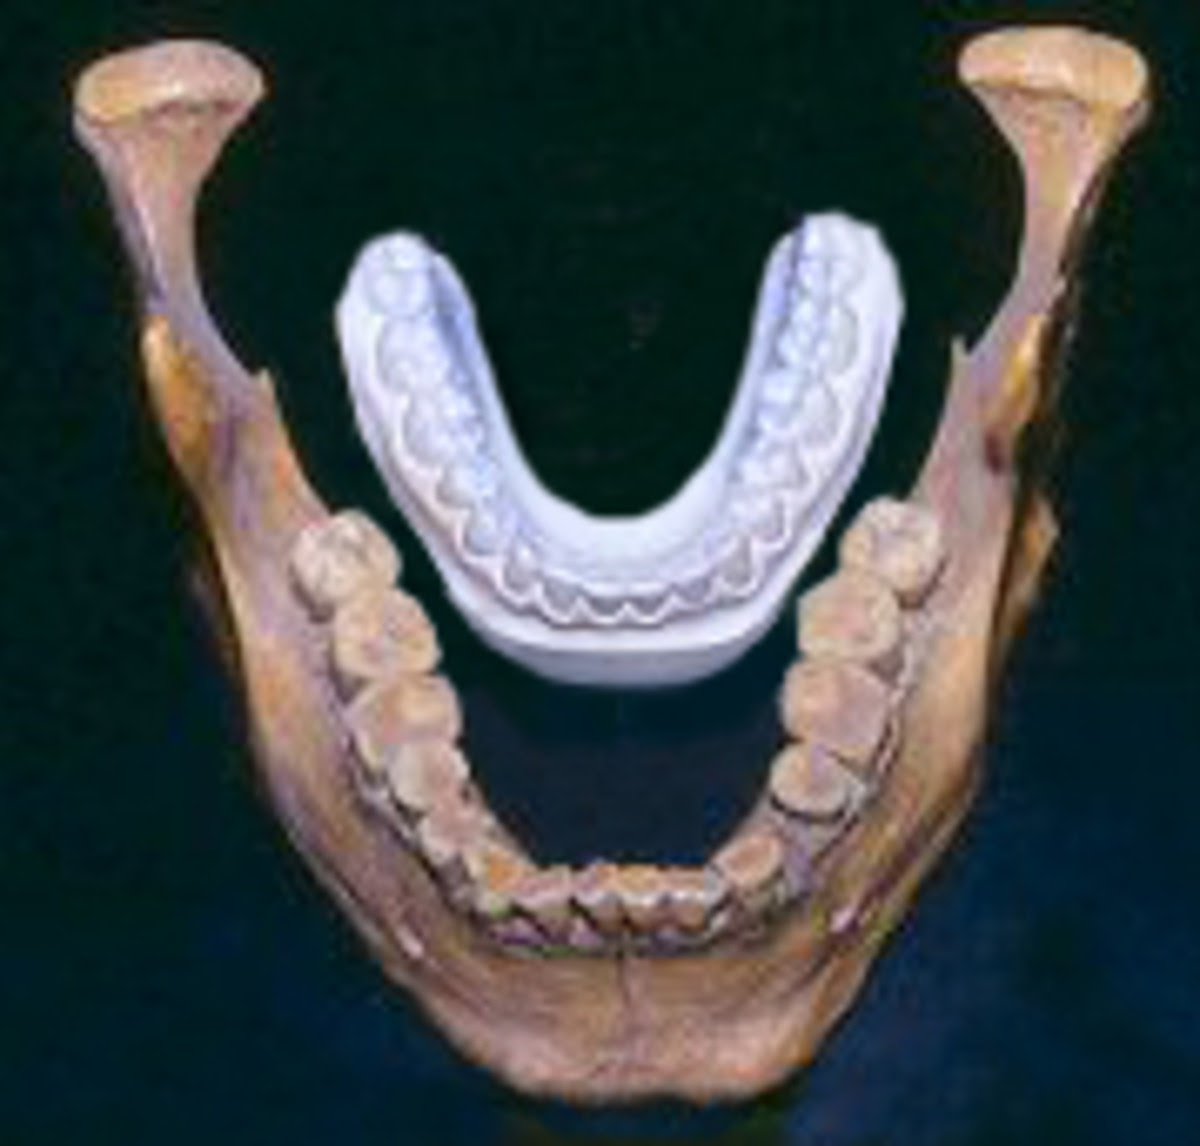 Lovelock Cave Giant Jaw Comparison